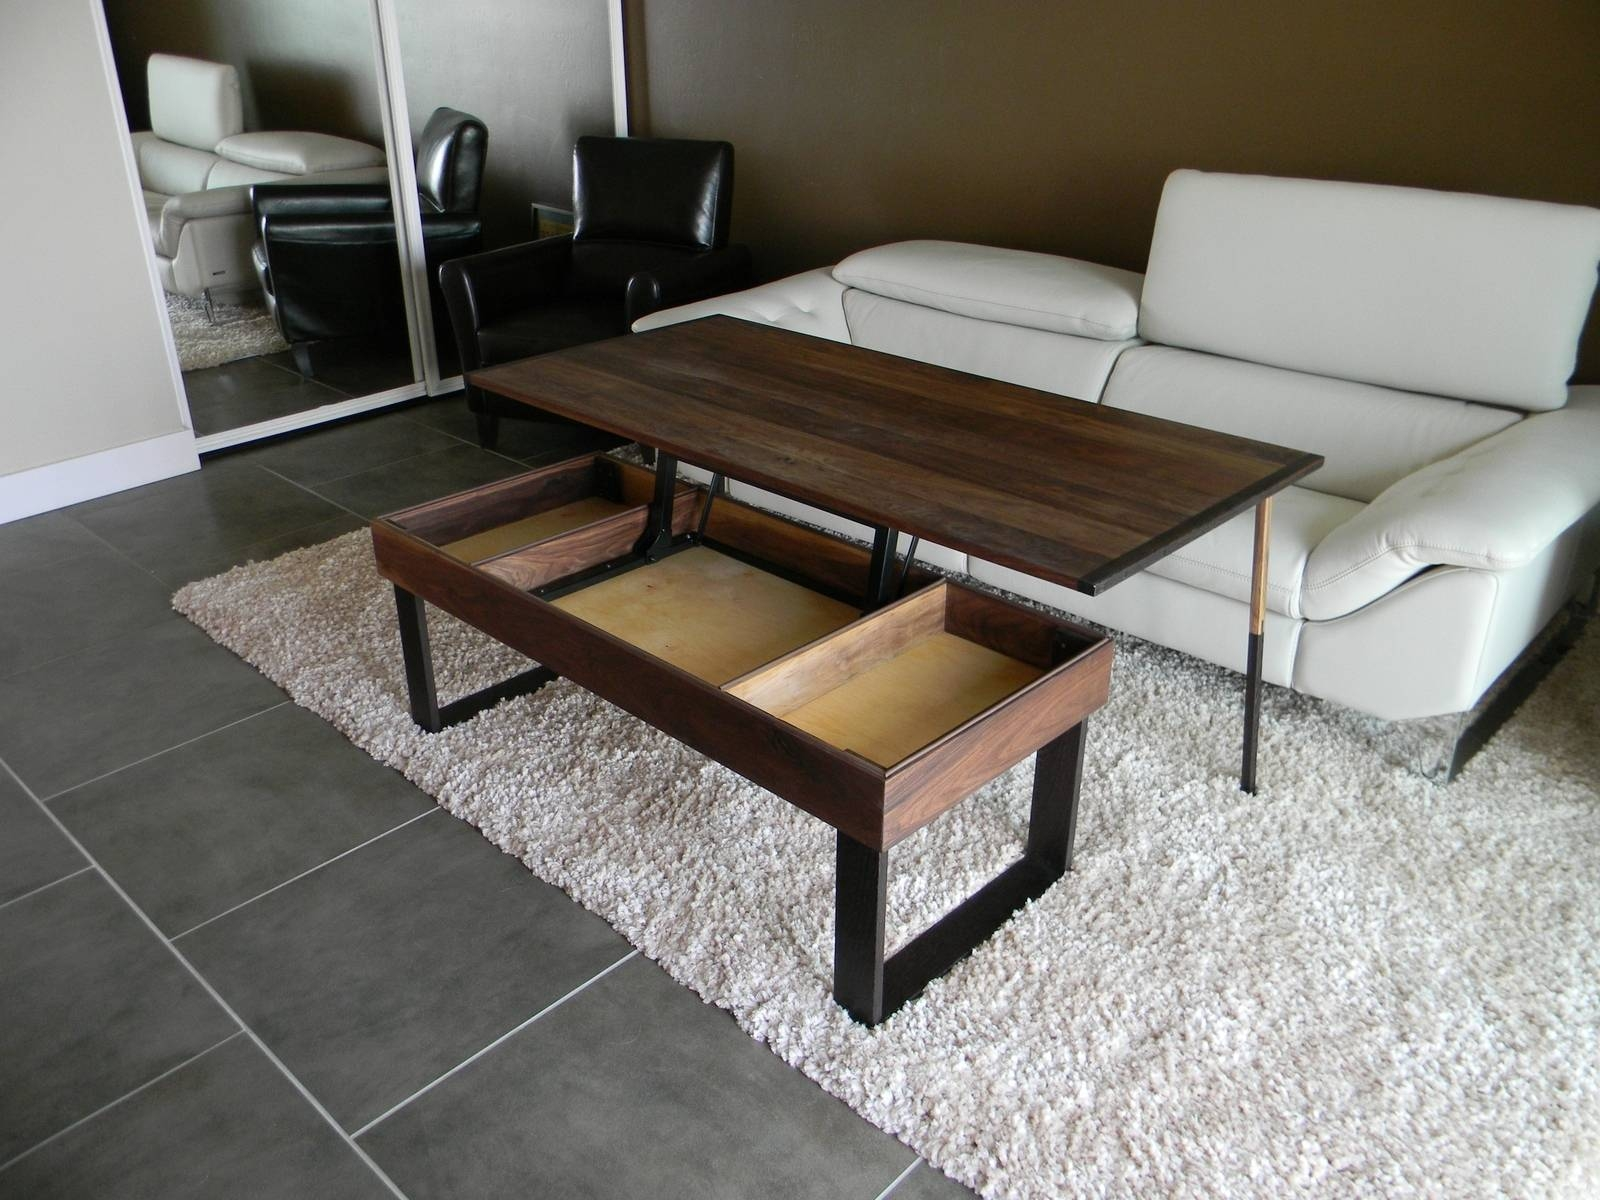 Coffee Tables: Popular Wooden Coffee Tables Design Ideas Wood intended for Dark Wood Coffee Table Storages (Image 15 of 30)